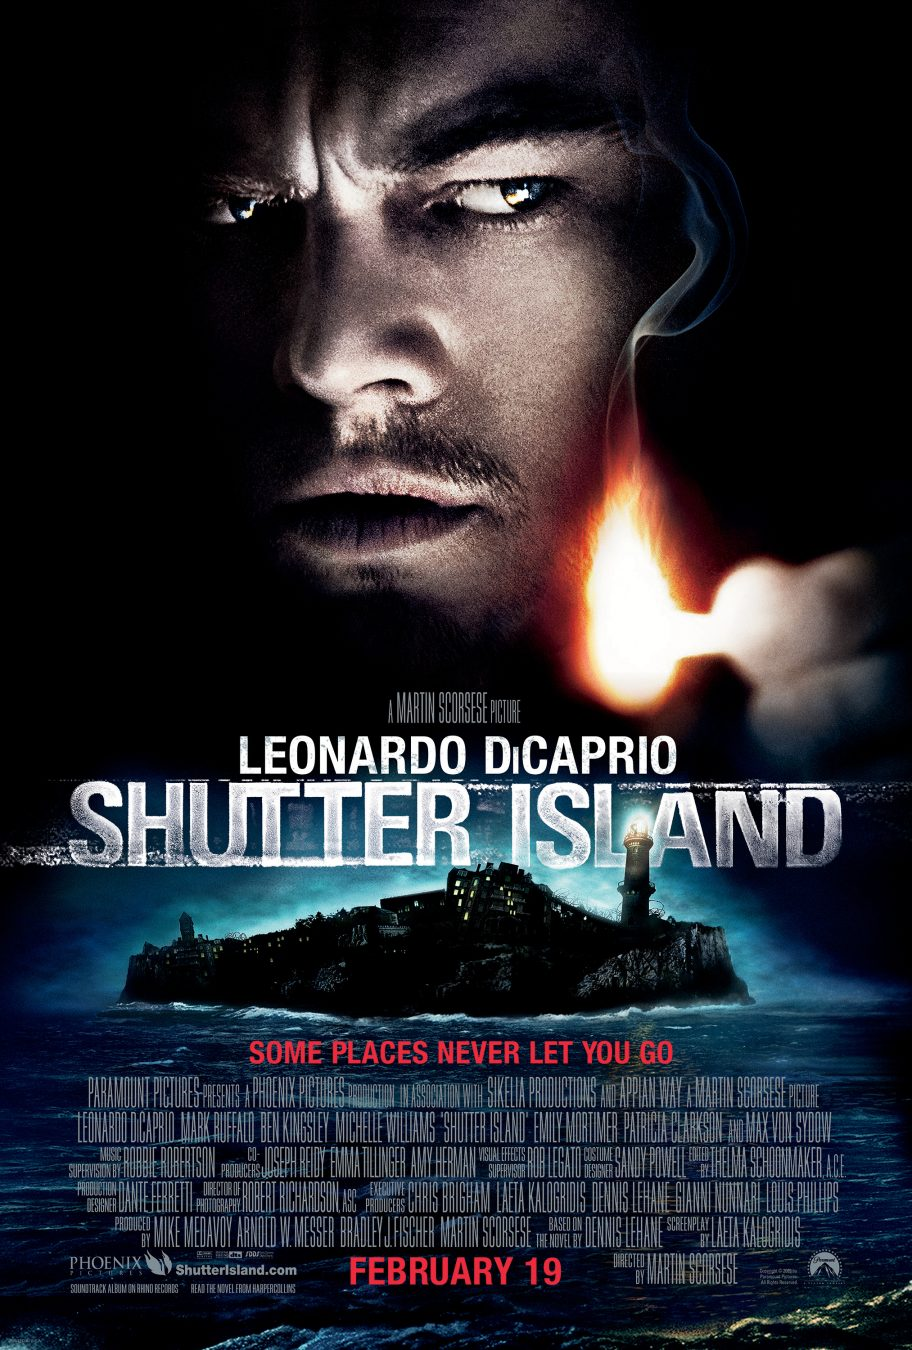 10 Years Later Martin Scorsese's SHUTTER ISLAND Remains an Ominous and Emotional Ode to Dark Cinema